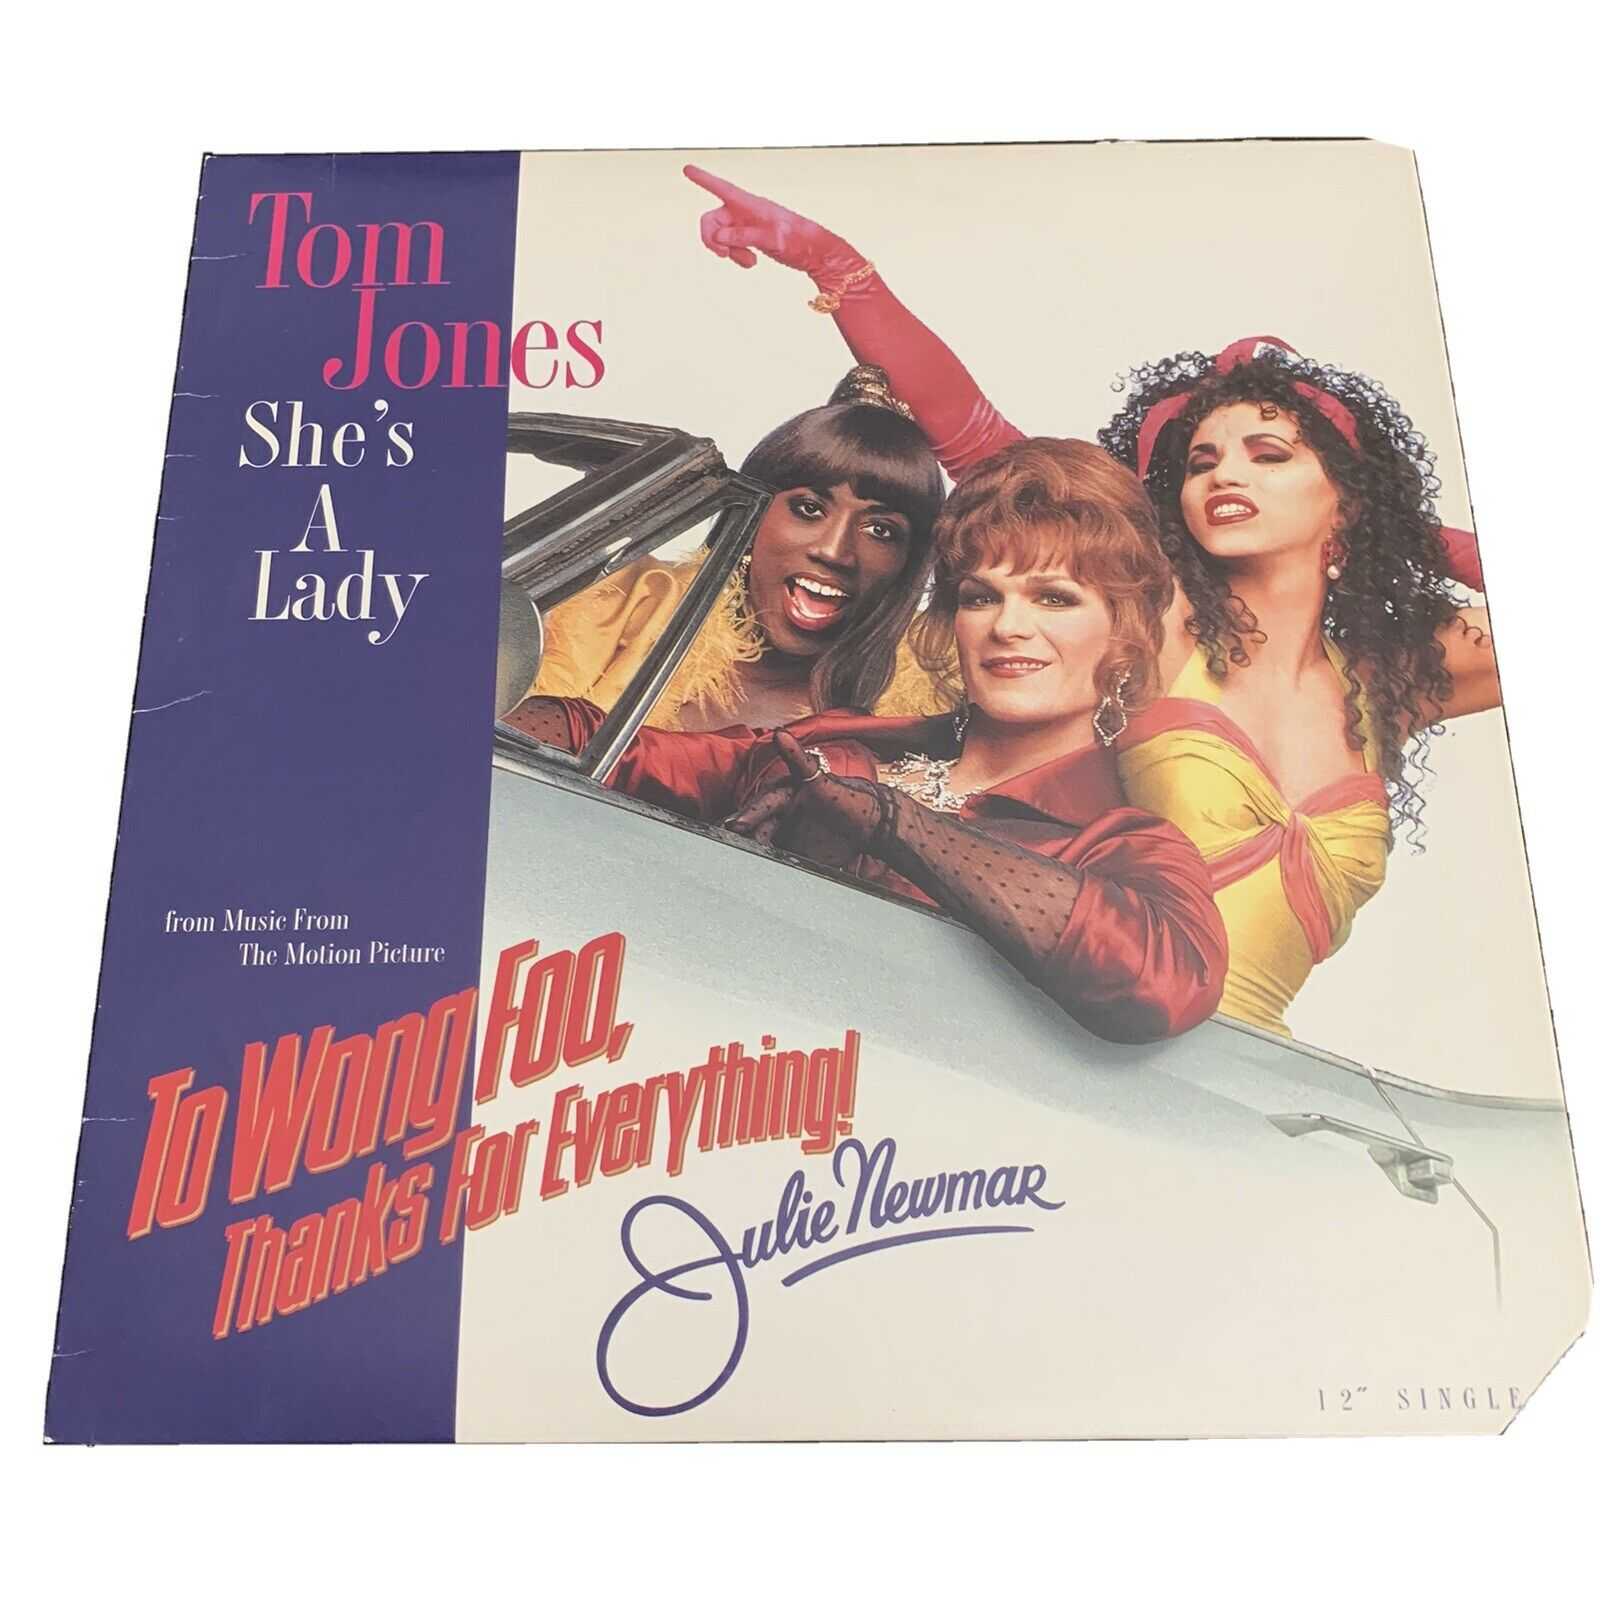 Tom Jones She S A Lady 12 Vinyl Single To Wong Foo Extended Tribal Beats Mix 0008815514415 For Sale Online